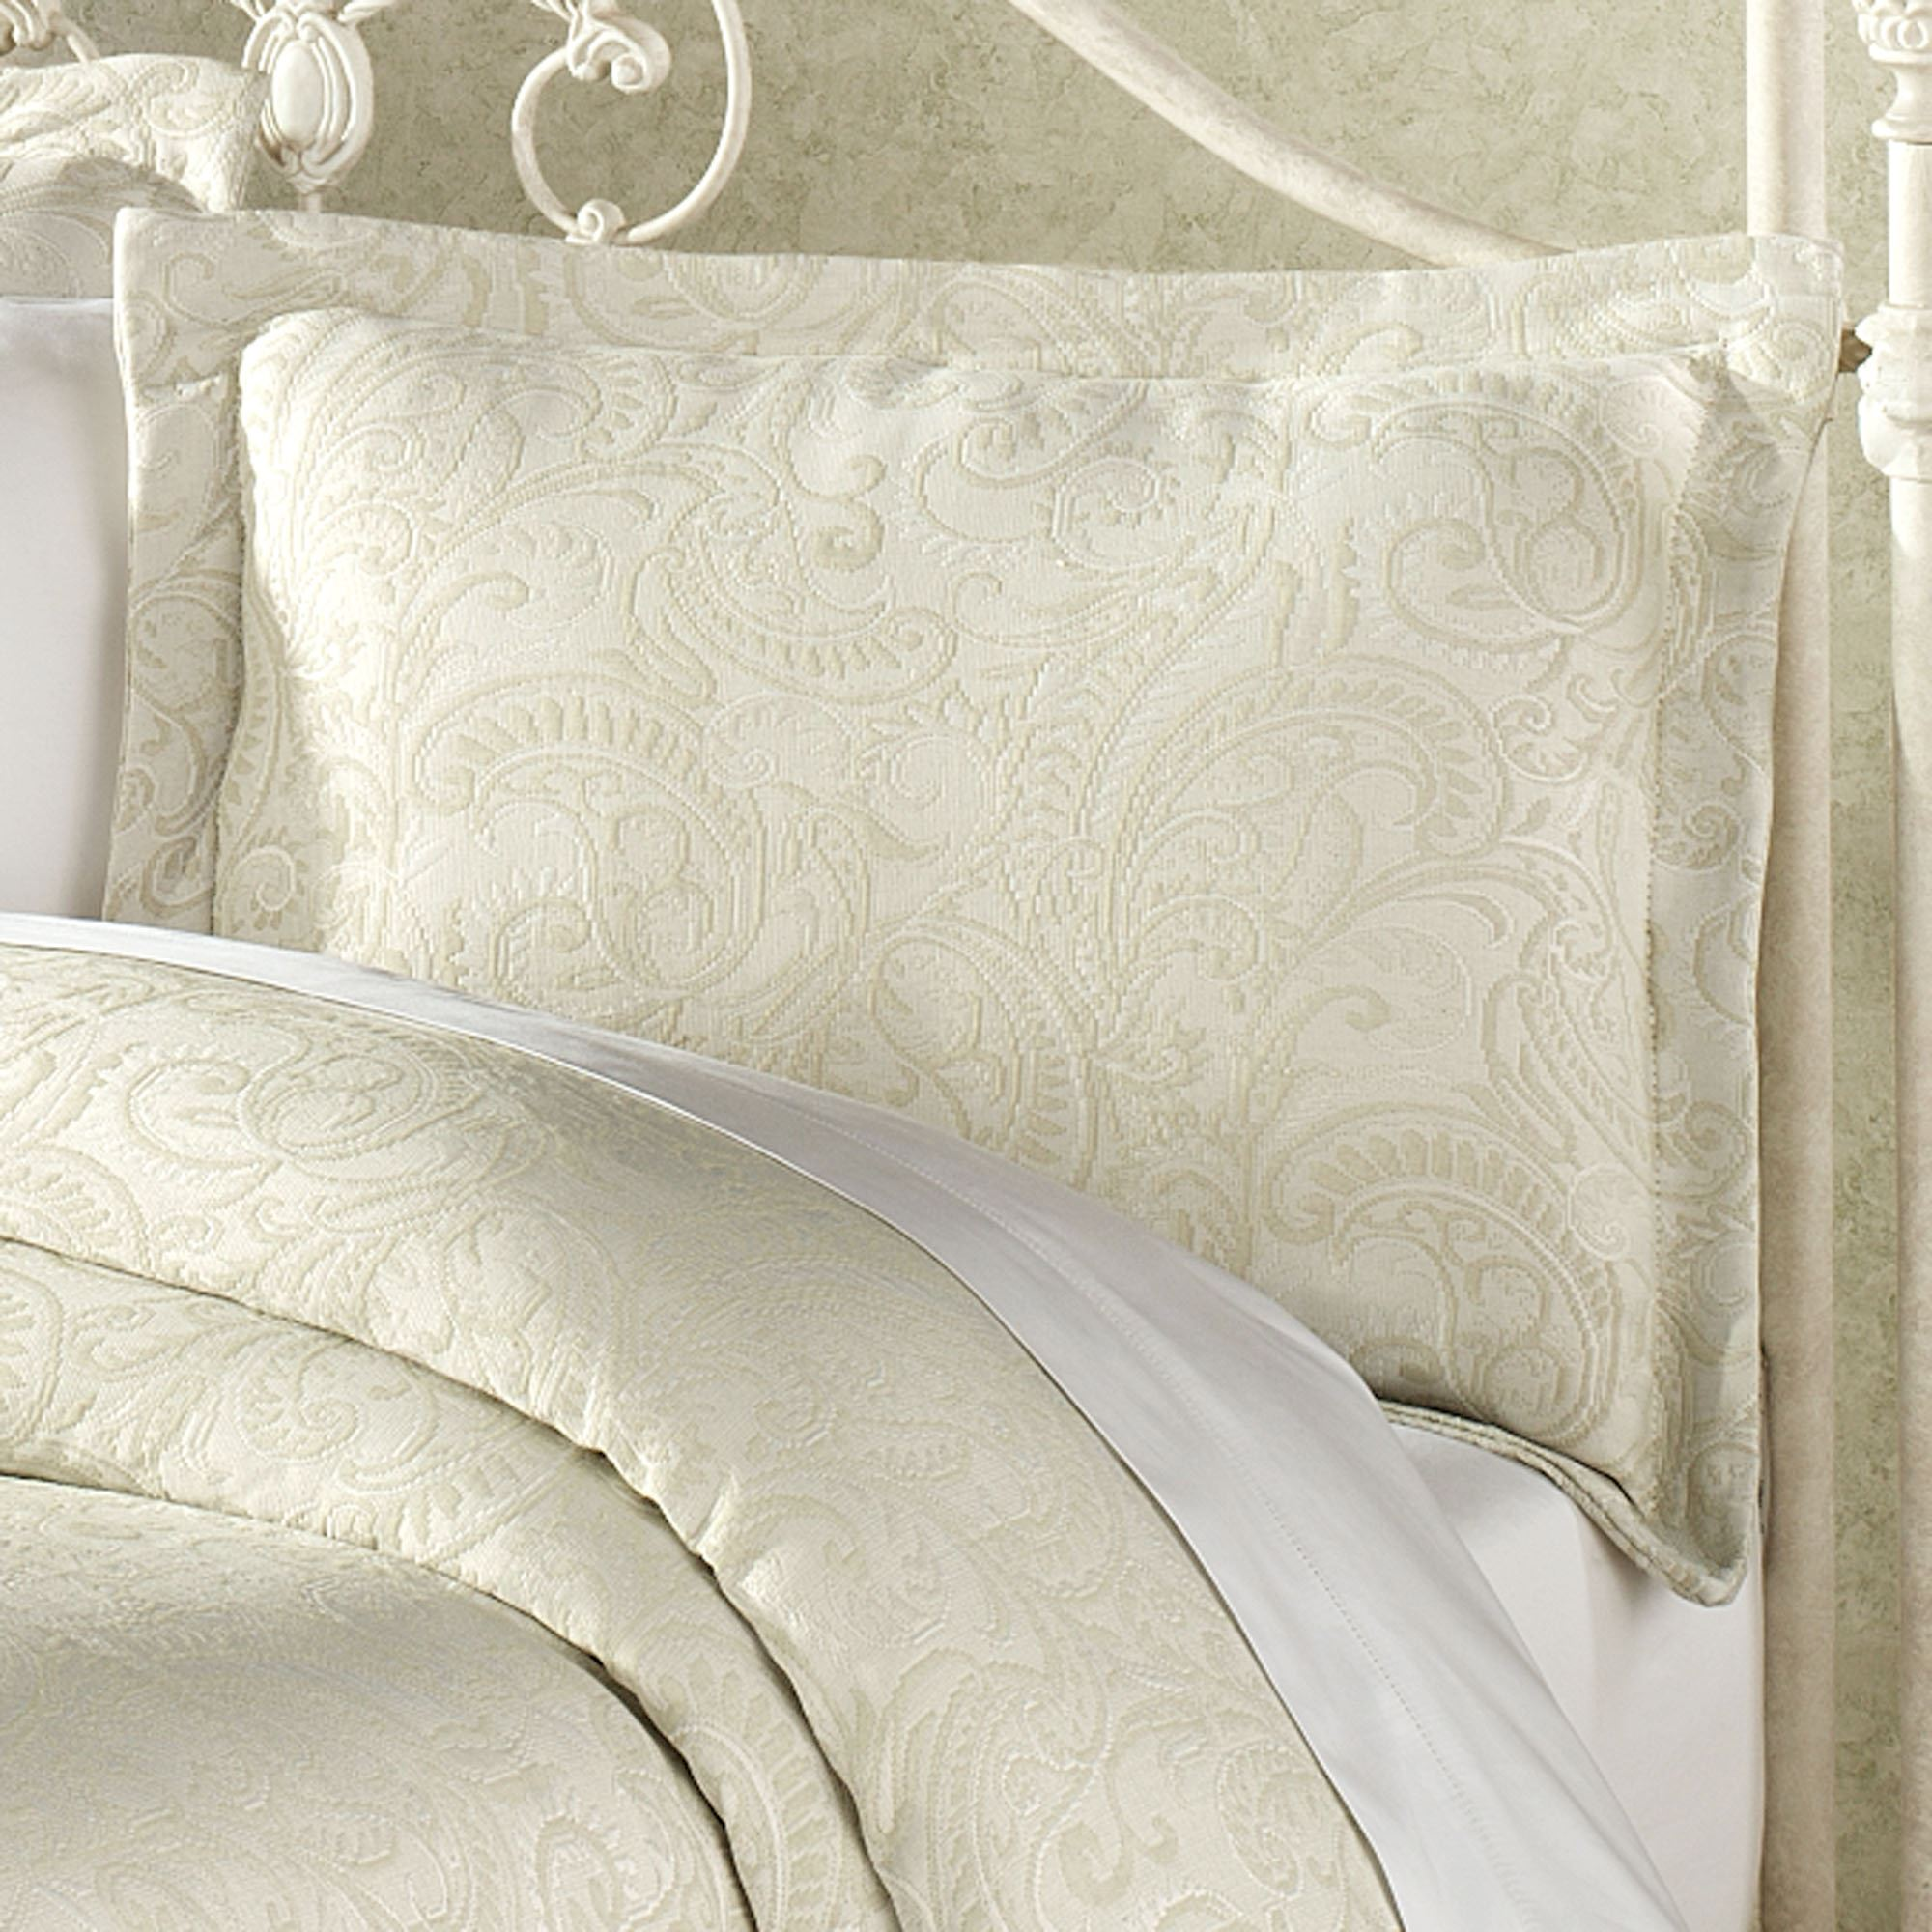 Frontgate Bedding | Matelasse Bedspreads | Chenille Blankets